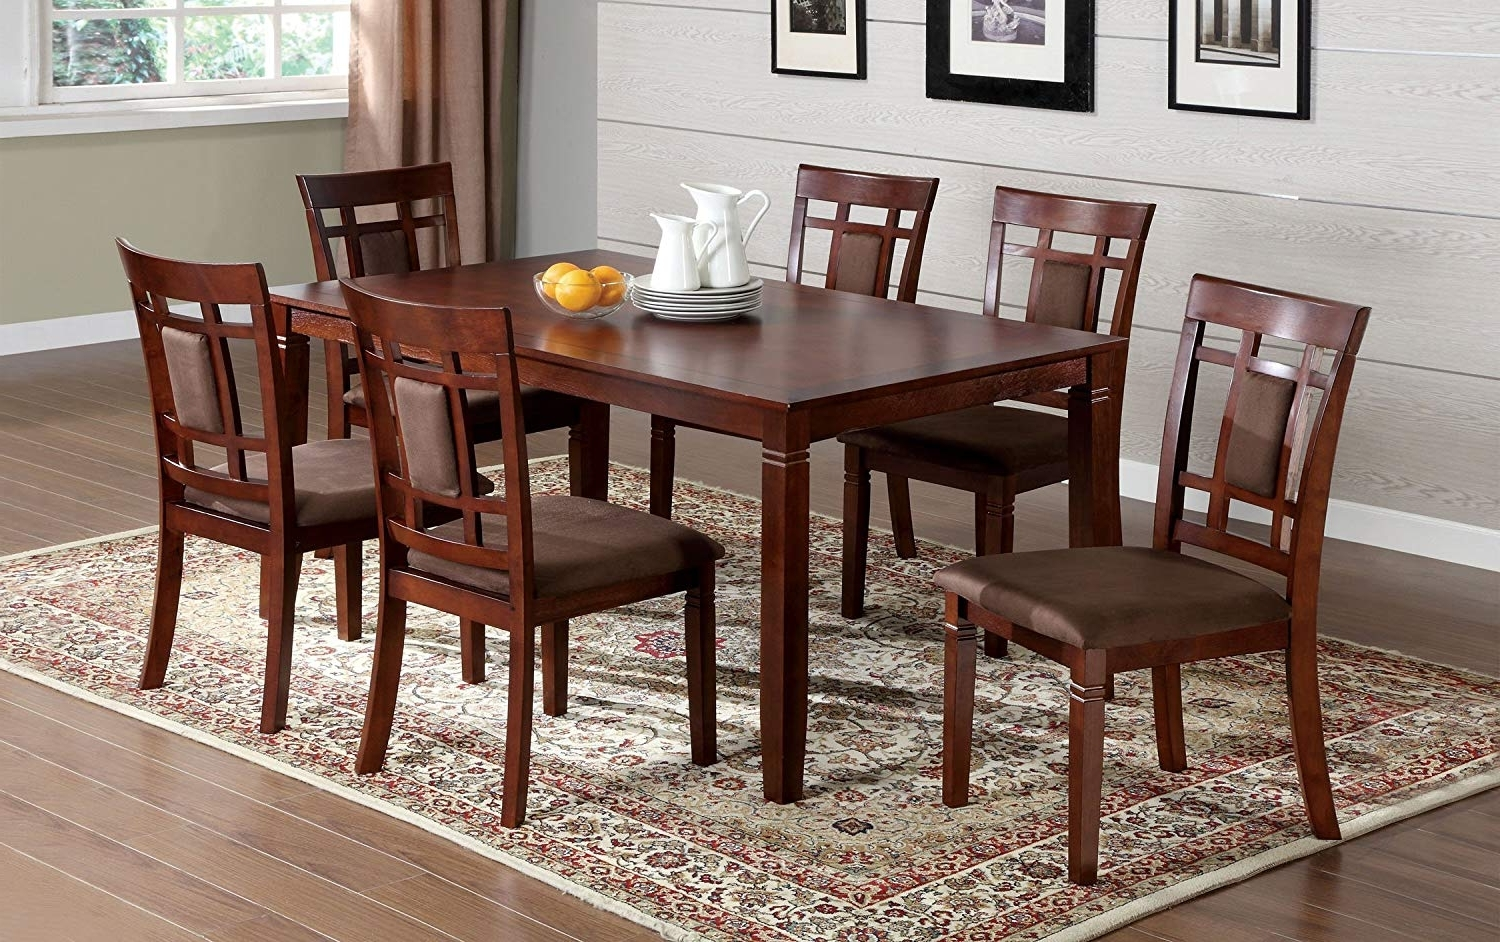 Most Recent Amazon – Furniture Of America Cartiere 7 Piece Dining Table Set With Regard To Dark Wood Dining Tables 6 Chairs (View 9 of 25)